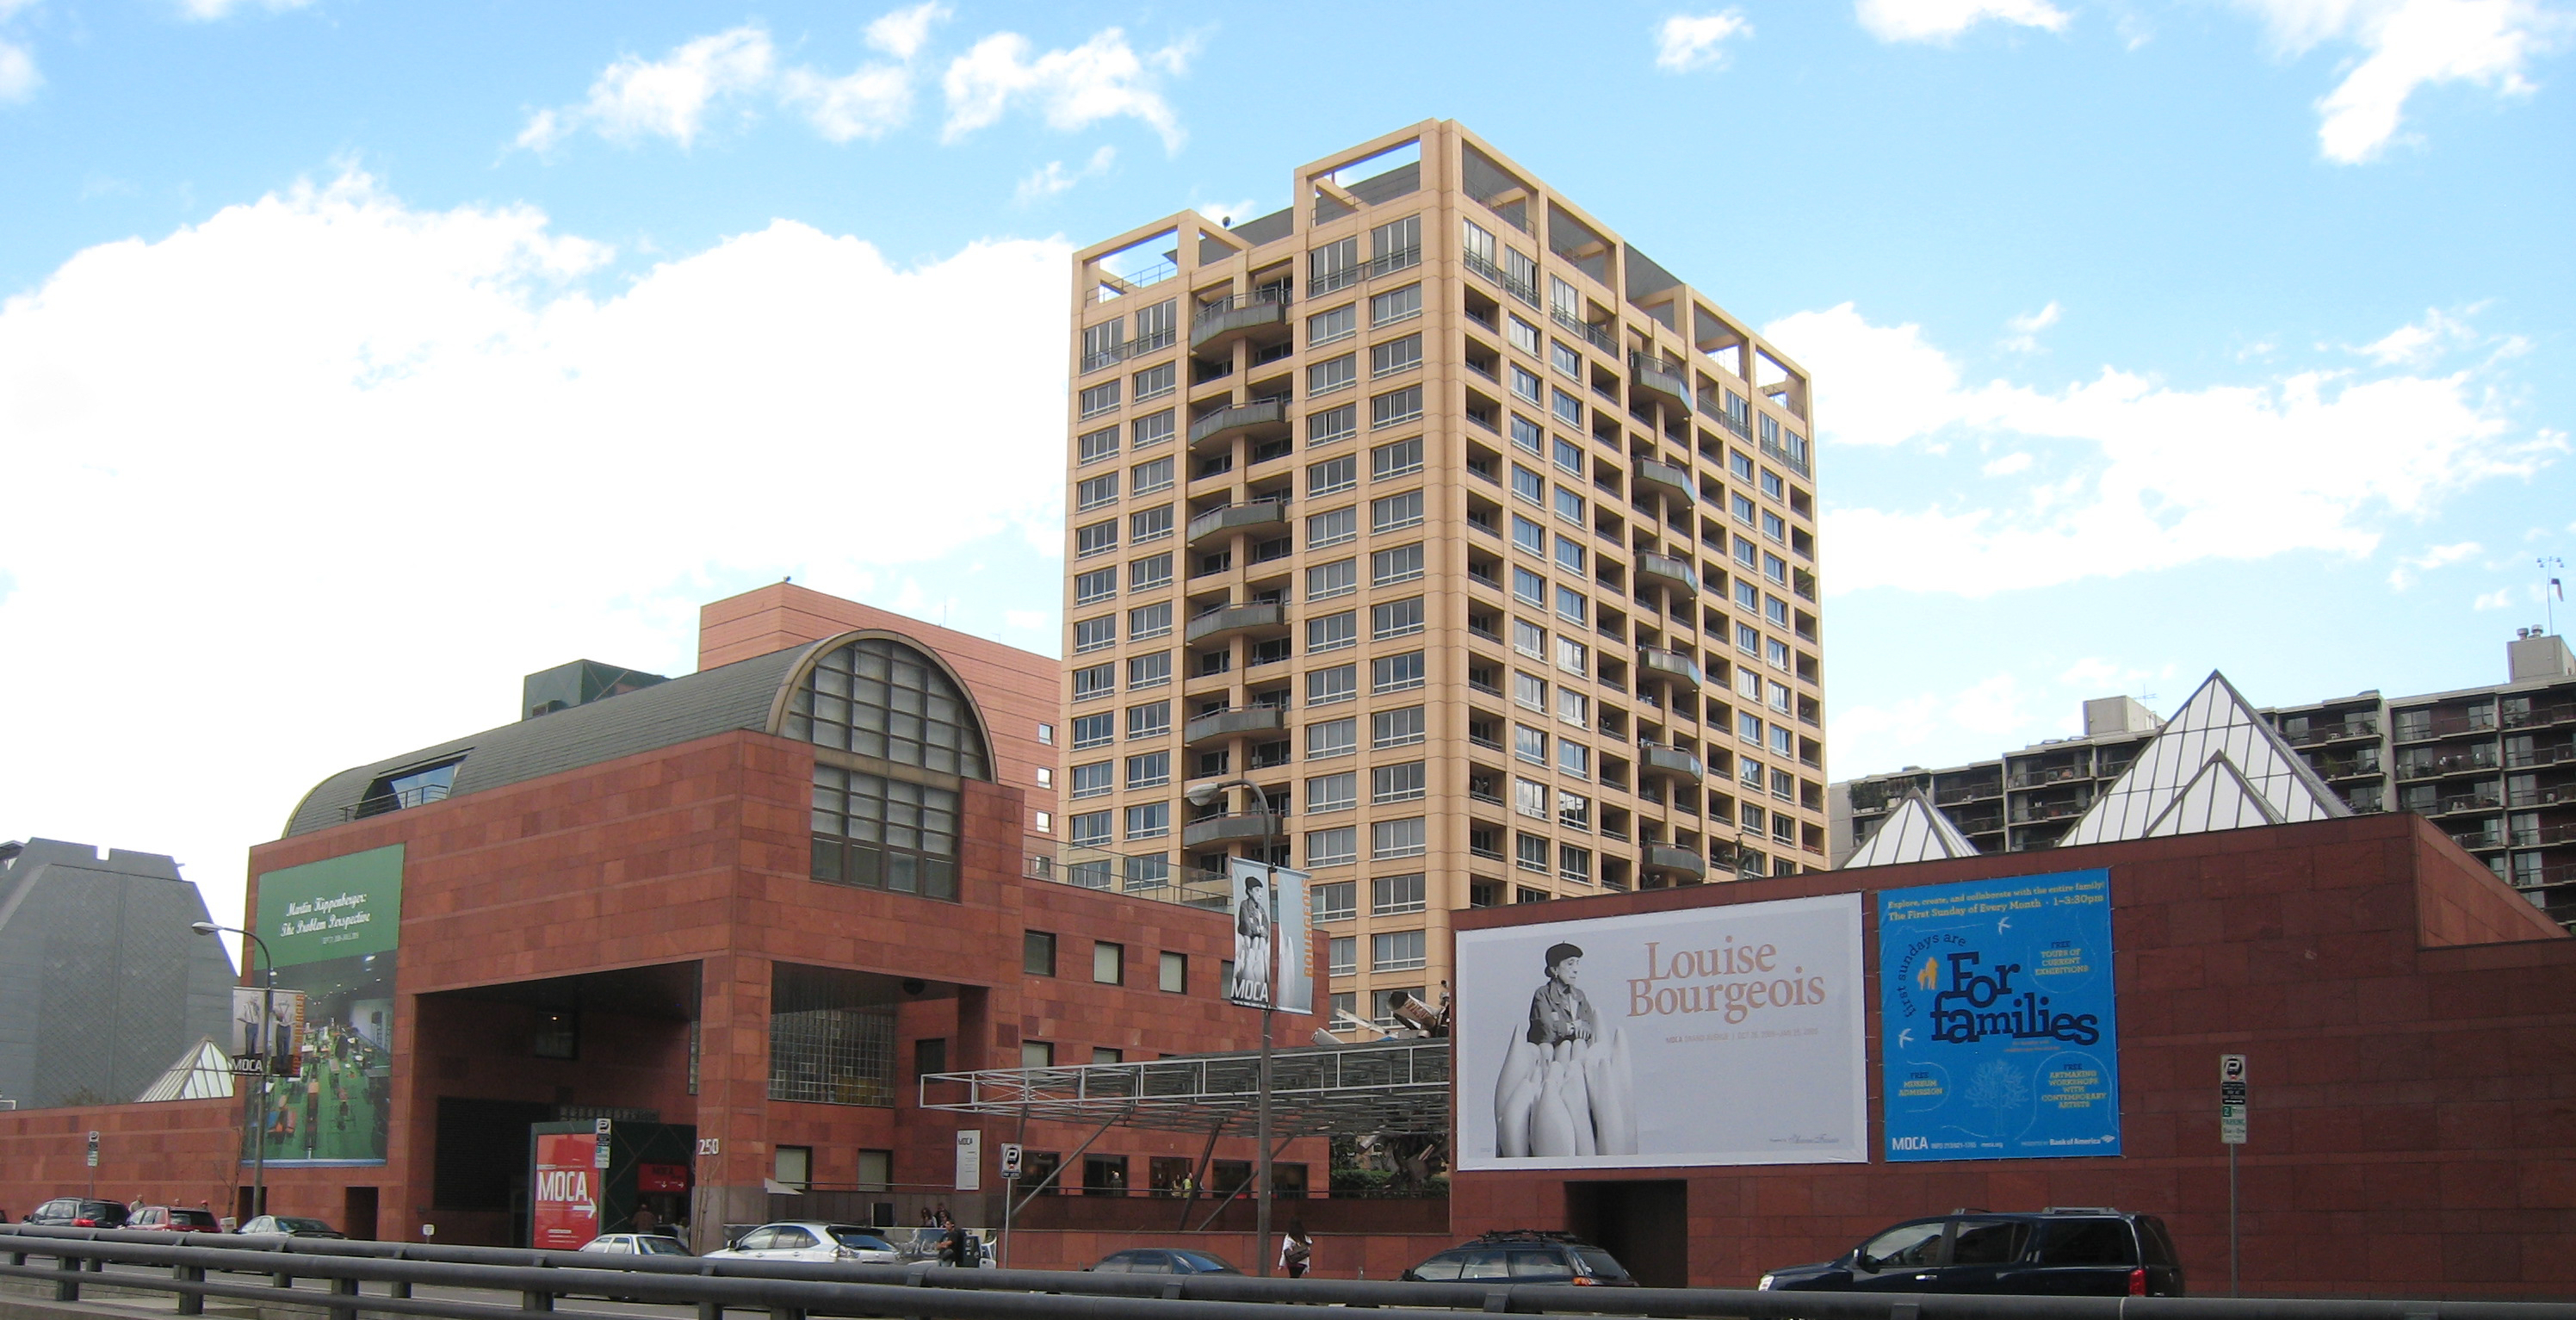 MOCA, picture from Wikipedia.